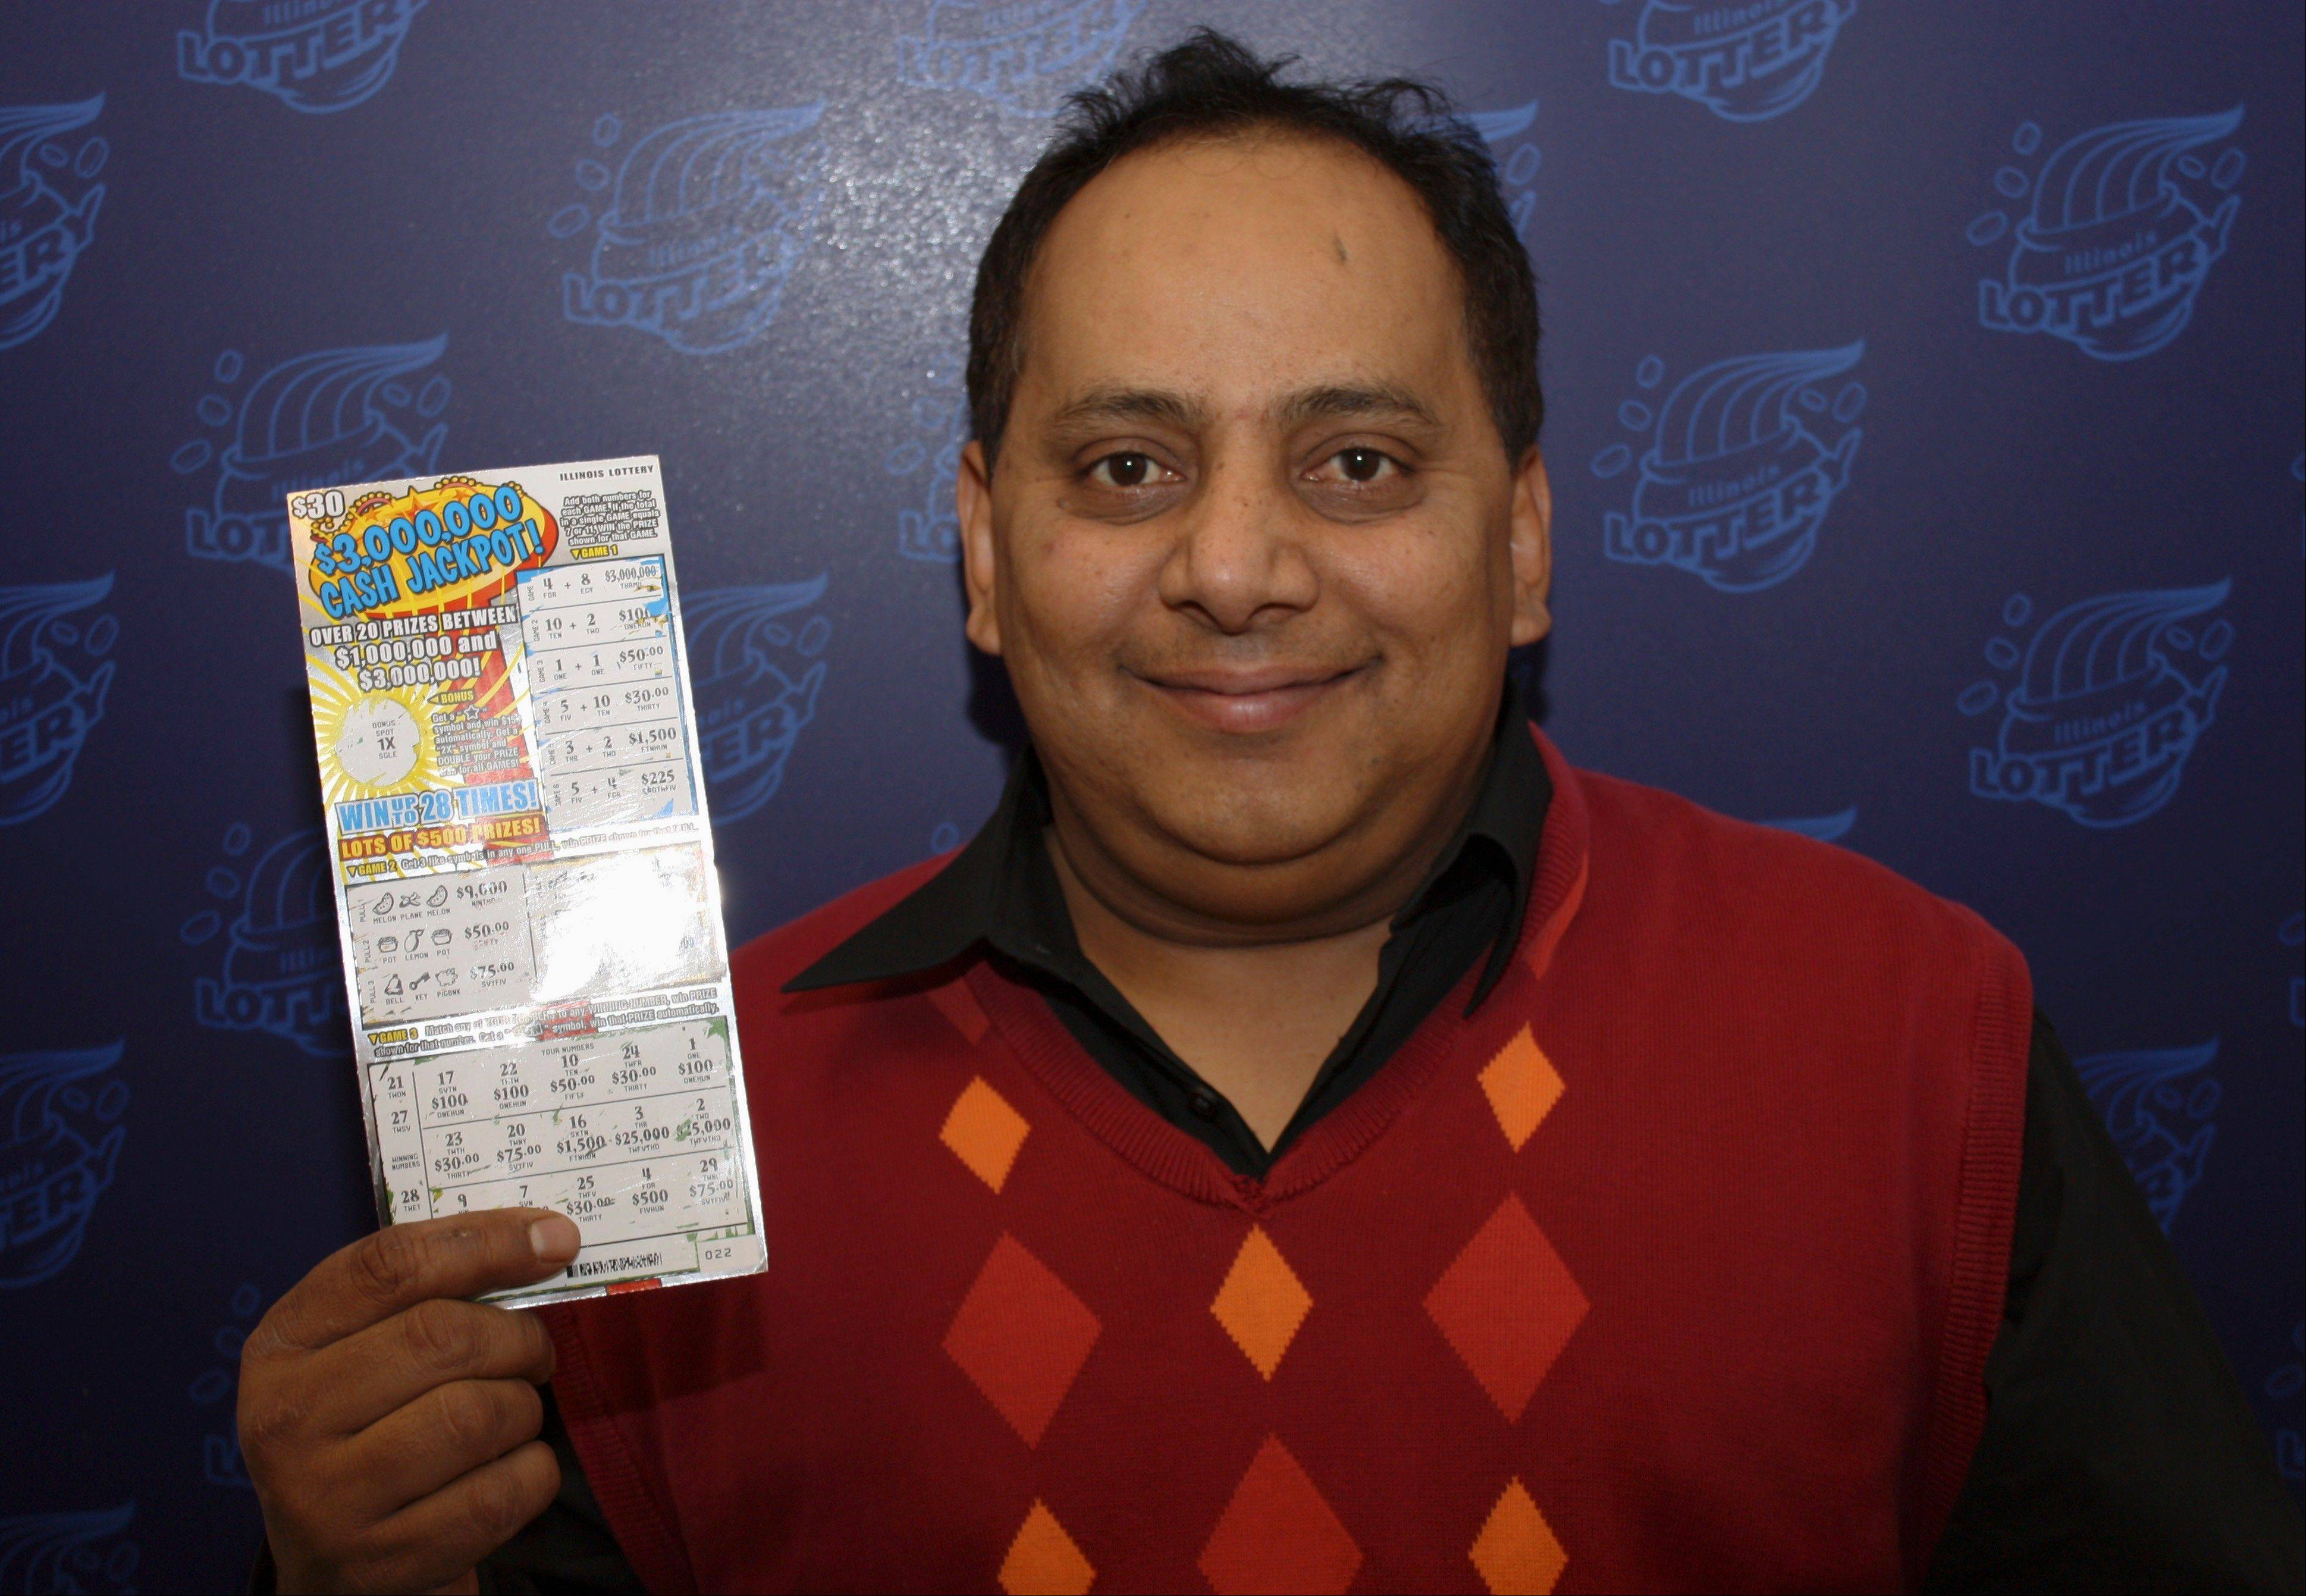 The Cook County medical examiner said that Urooj Khan was fatally poisoned with cyanide July 20, 2012, a day after he collected nearly $425,000 in lottery winnings.